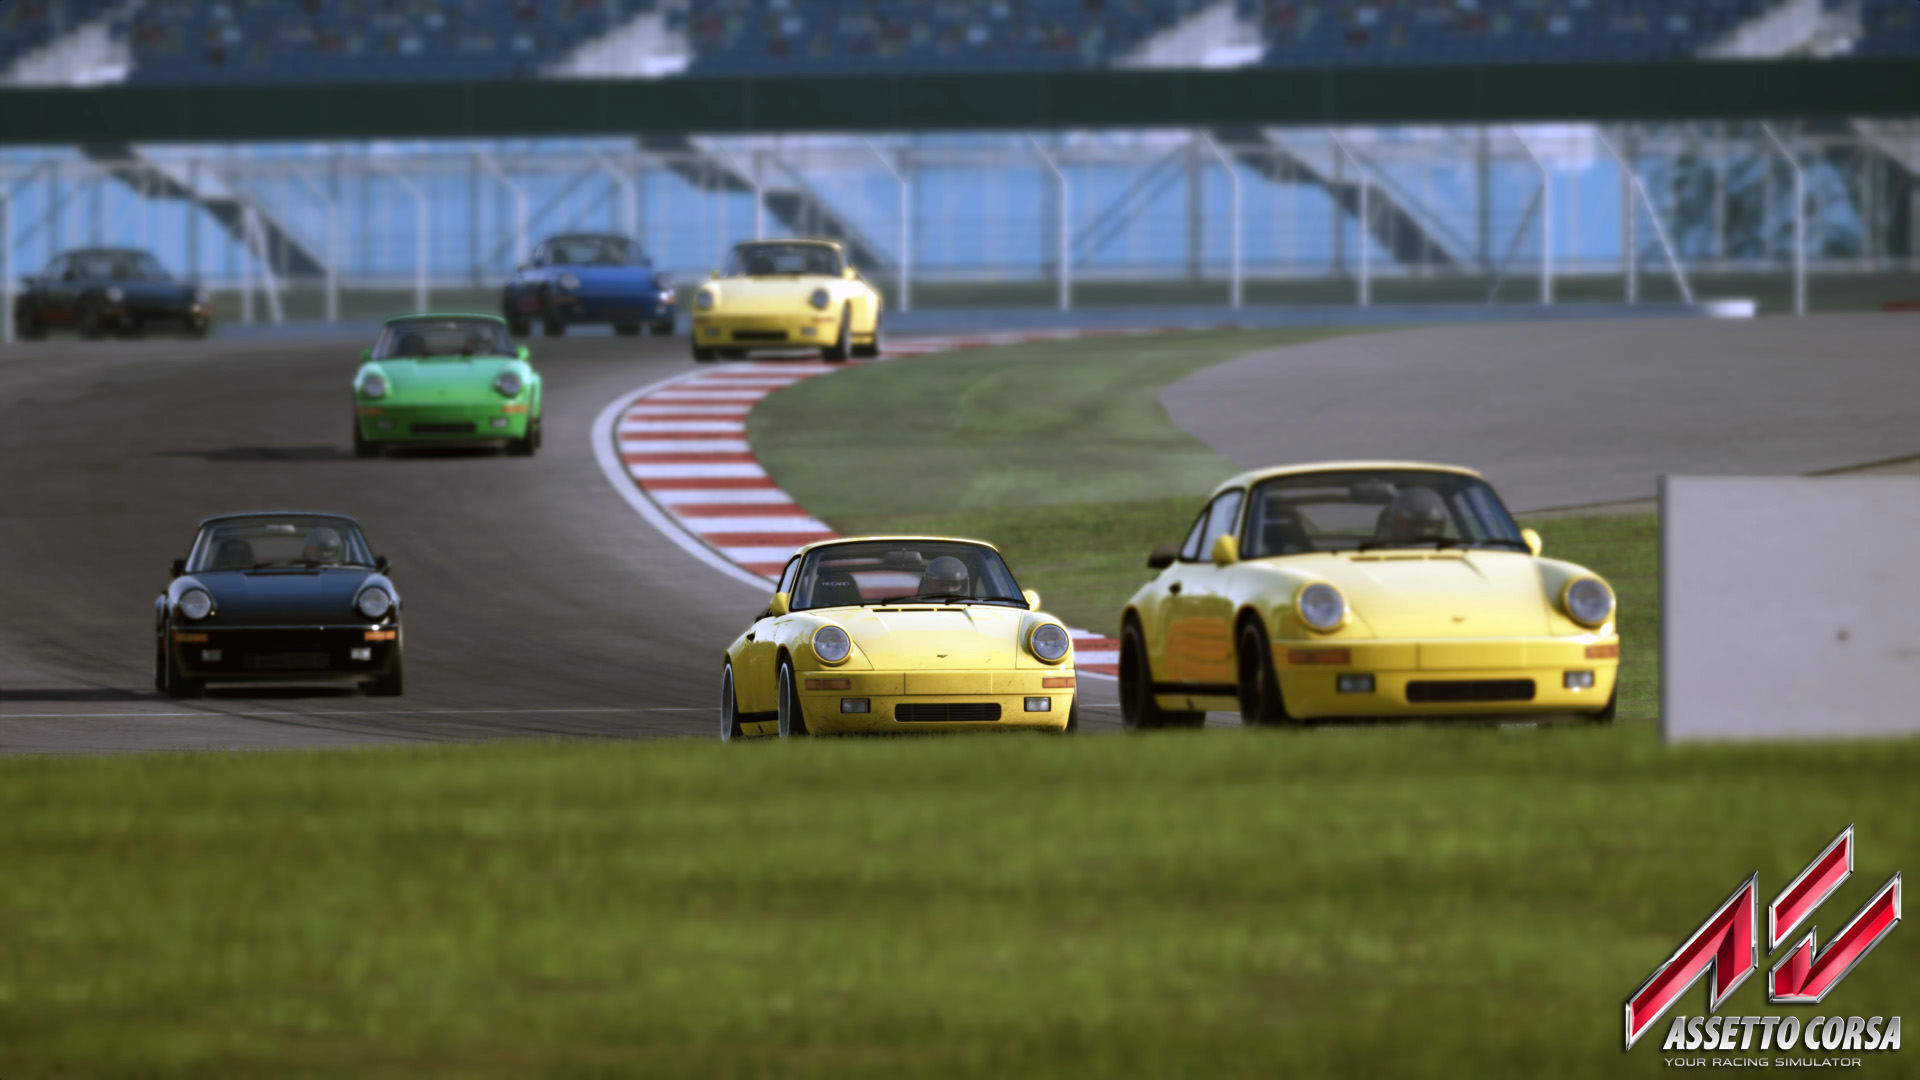 download assetto corsa full pc game